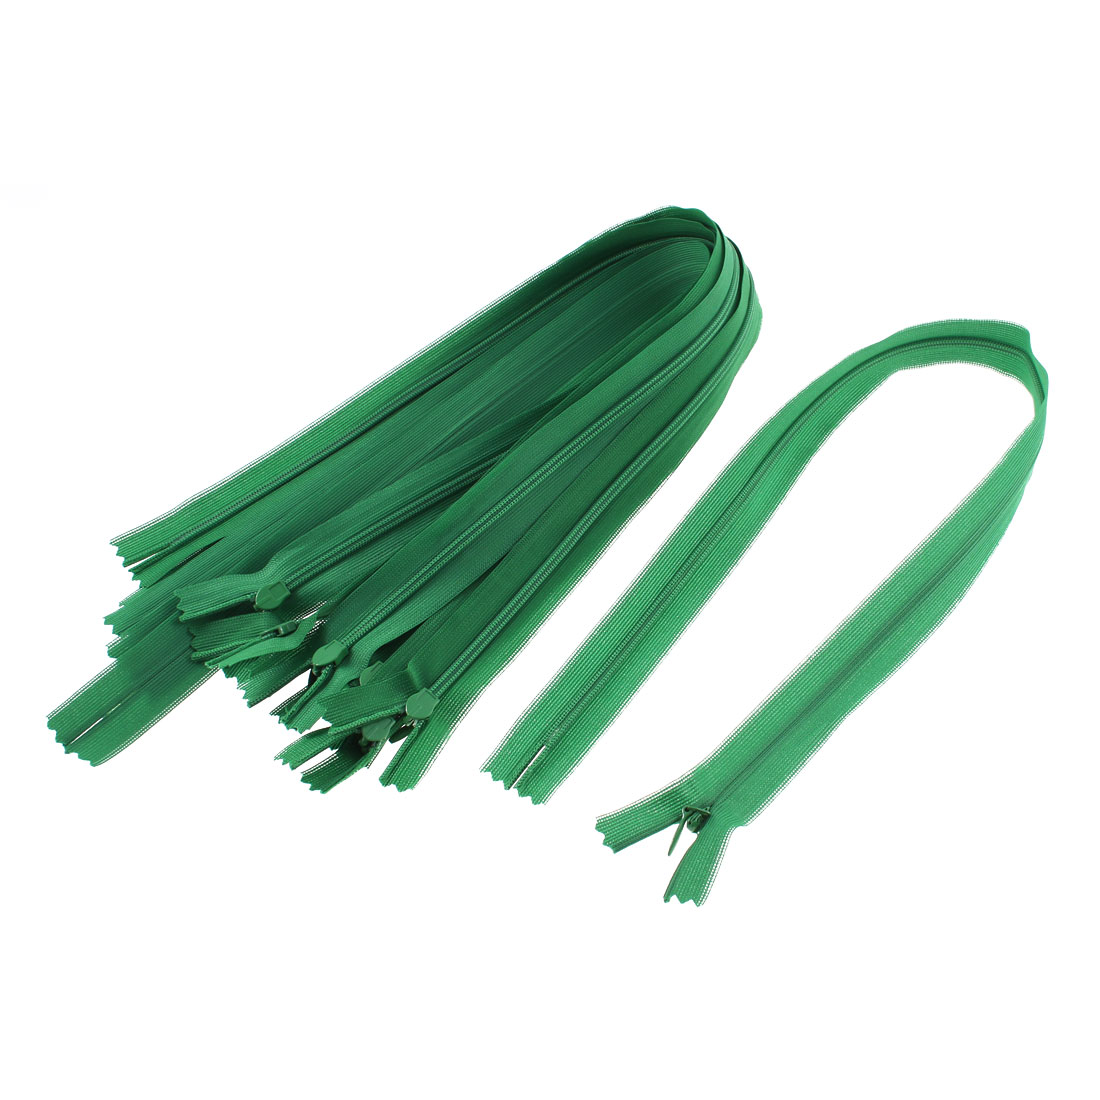 Dress Pants Closed End Nylon Zippers Tailor Sewing Craft Tool Green 50cm 10 Pcs